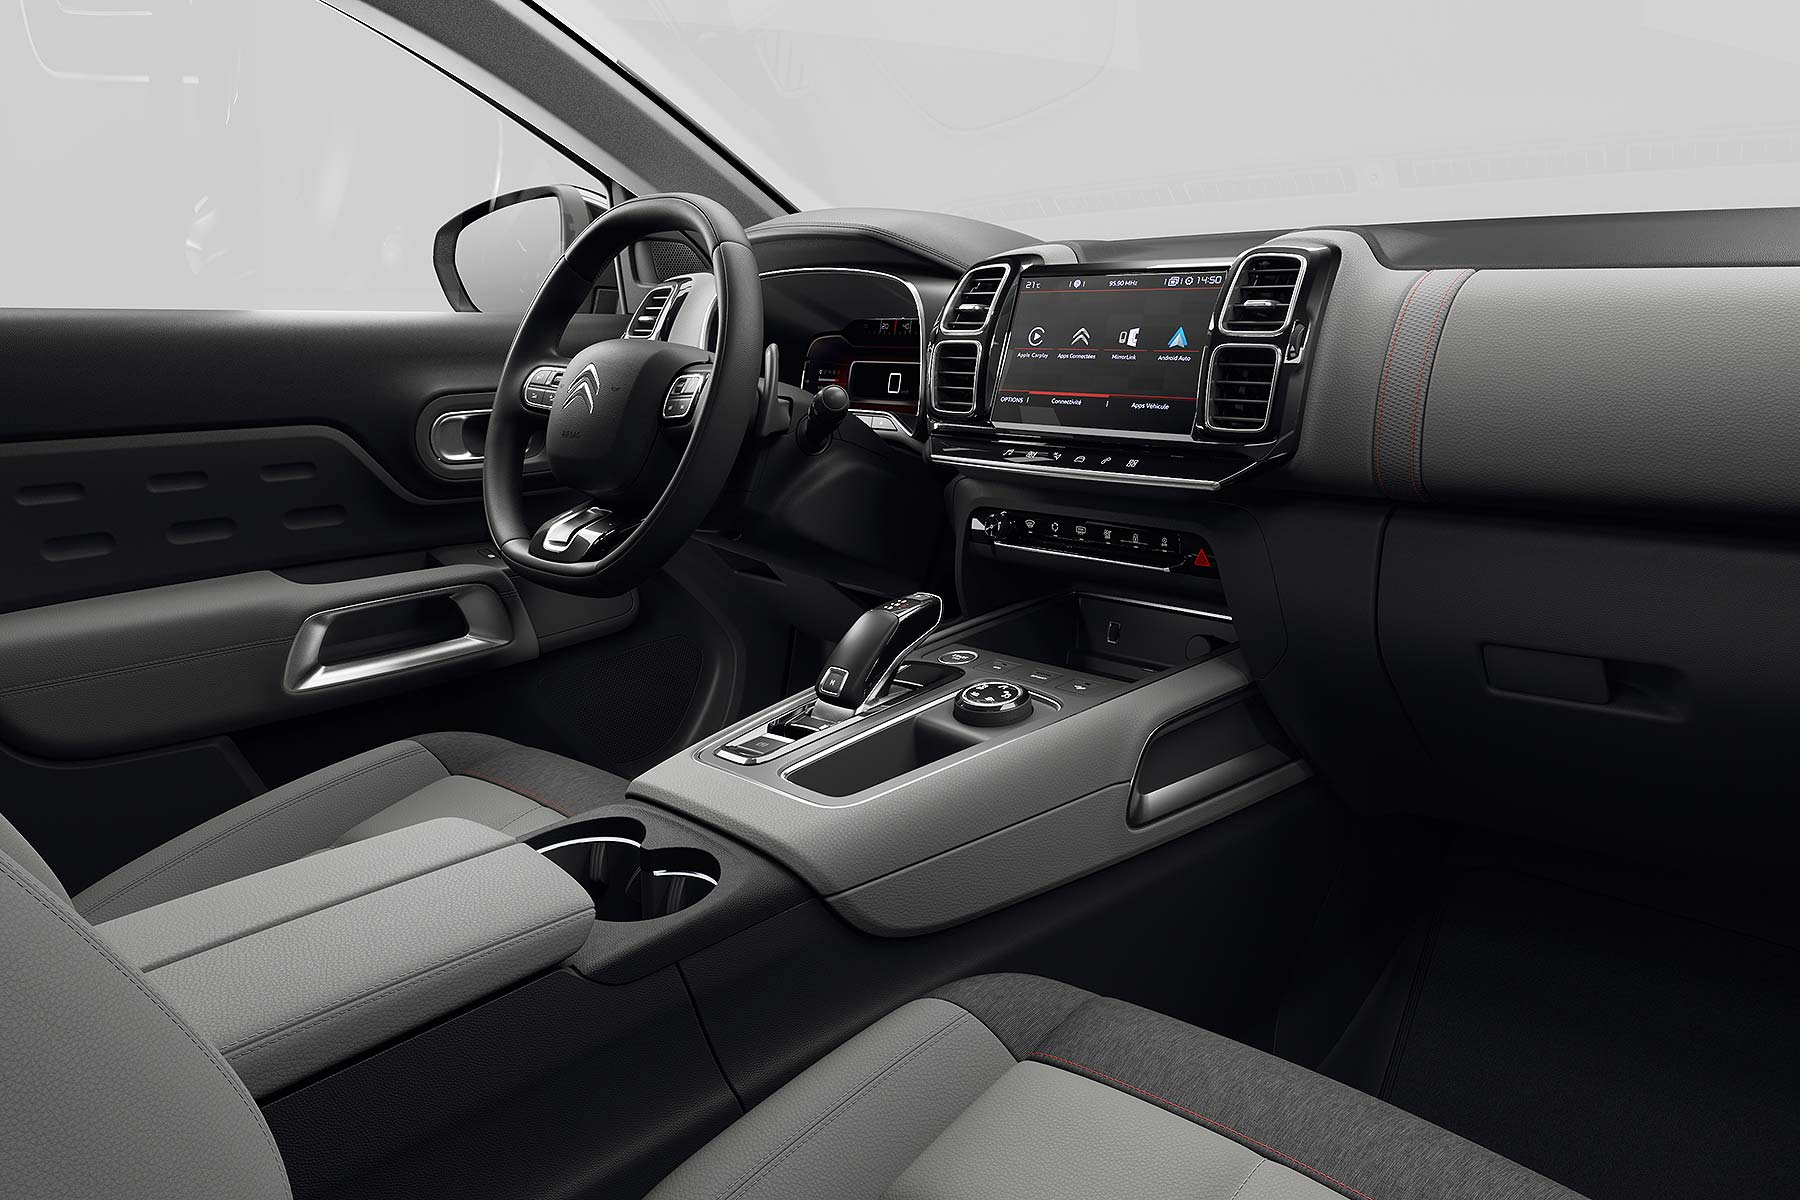 New 2019 Citroen C5 Aircross interior